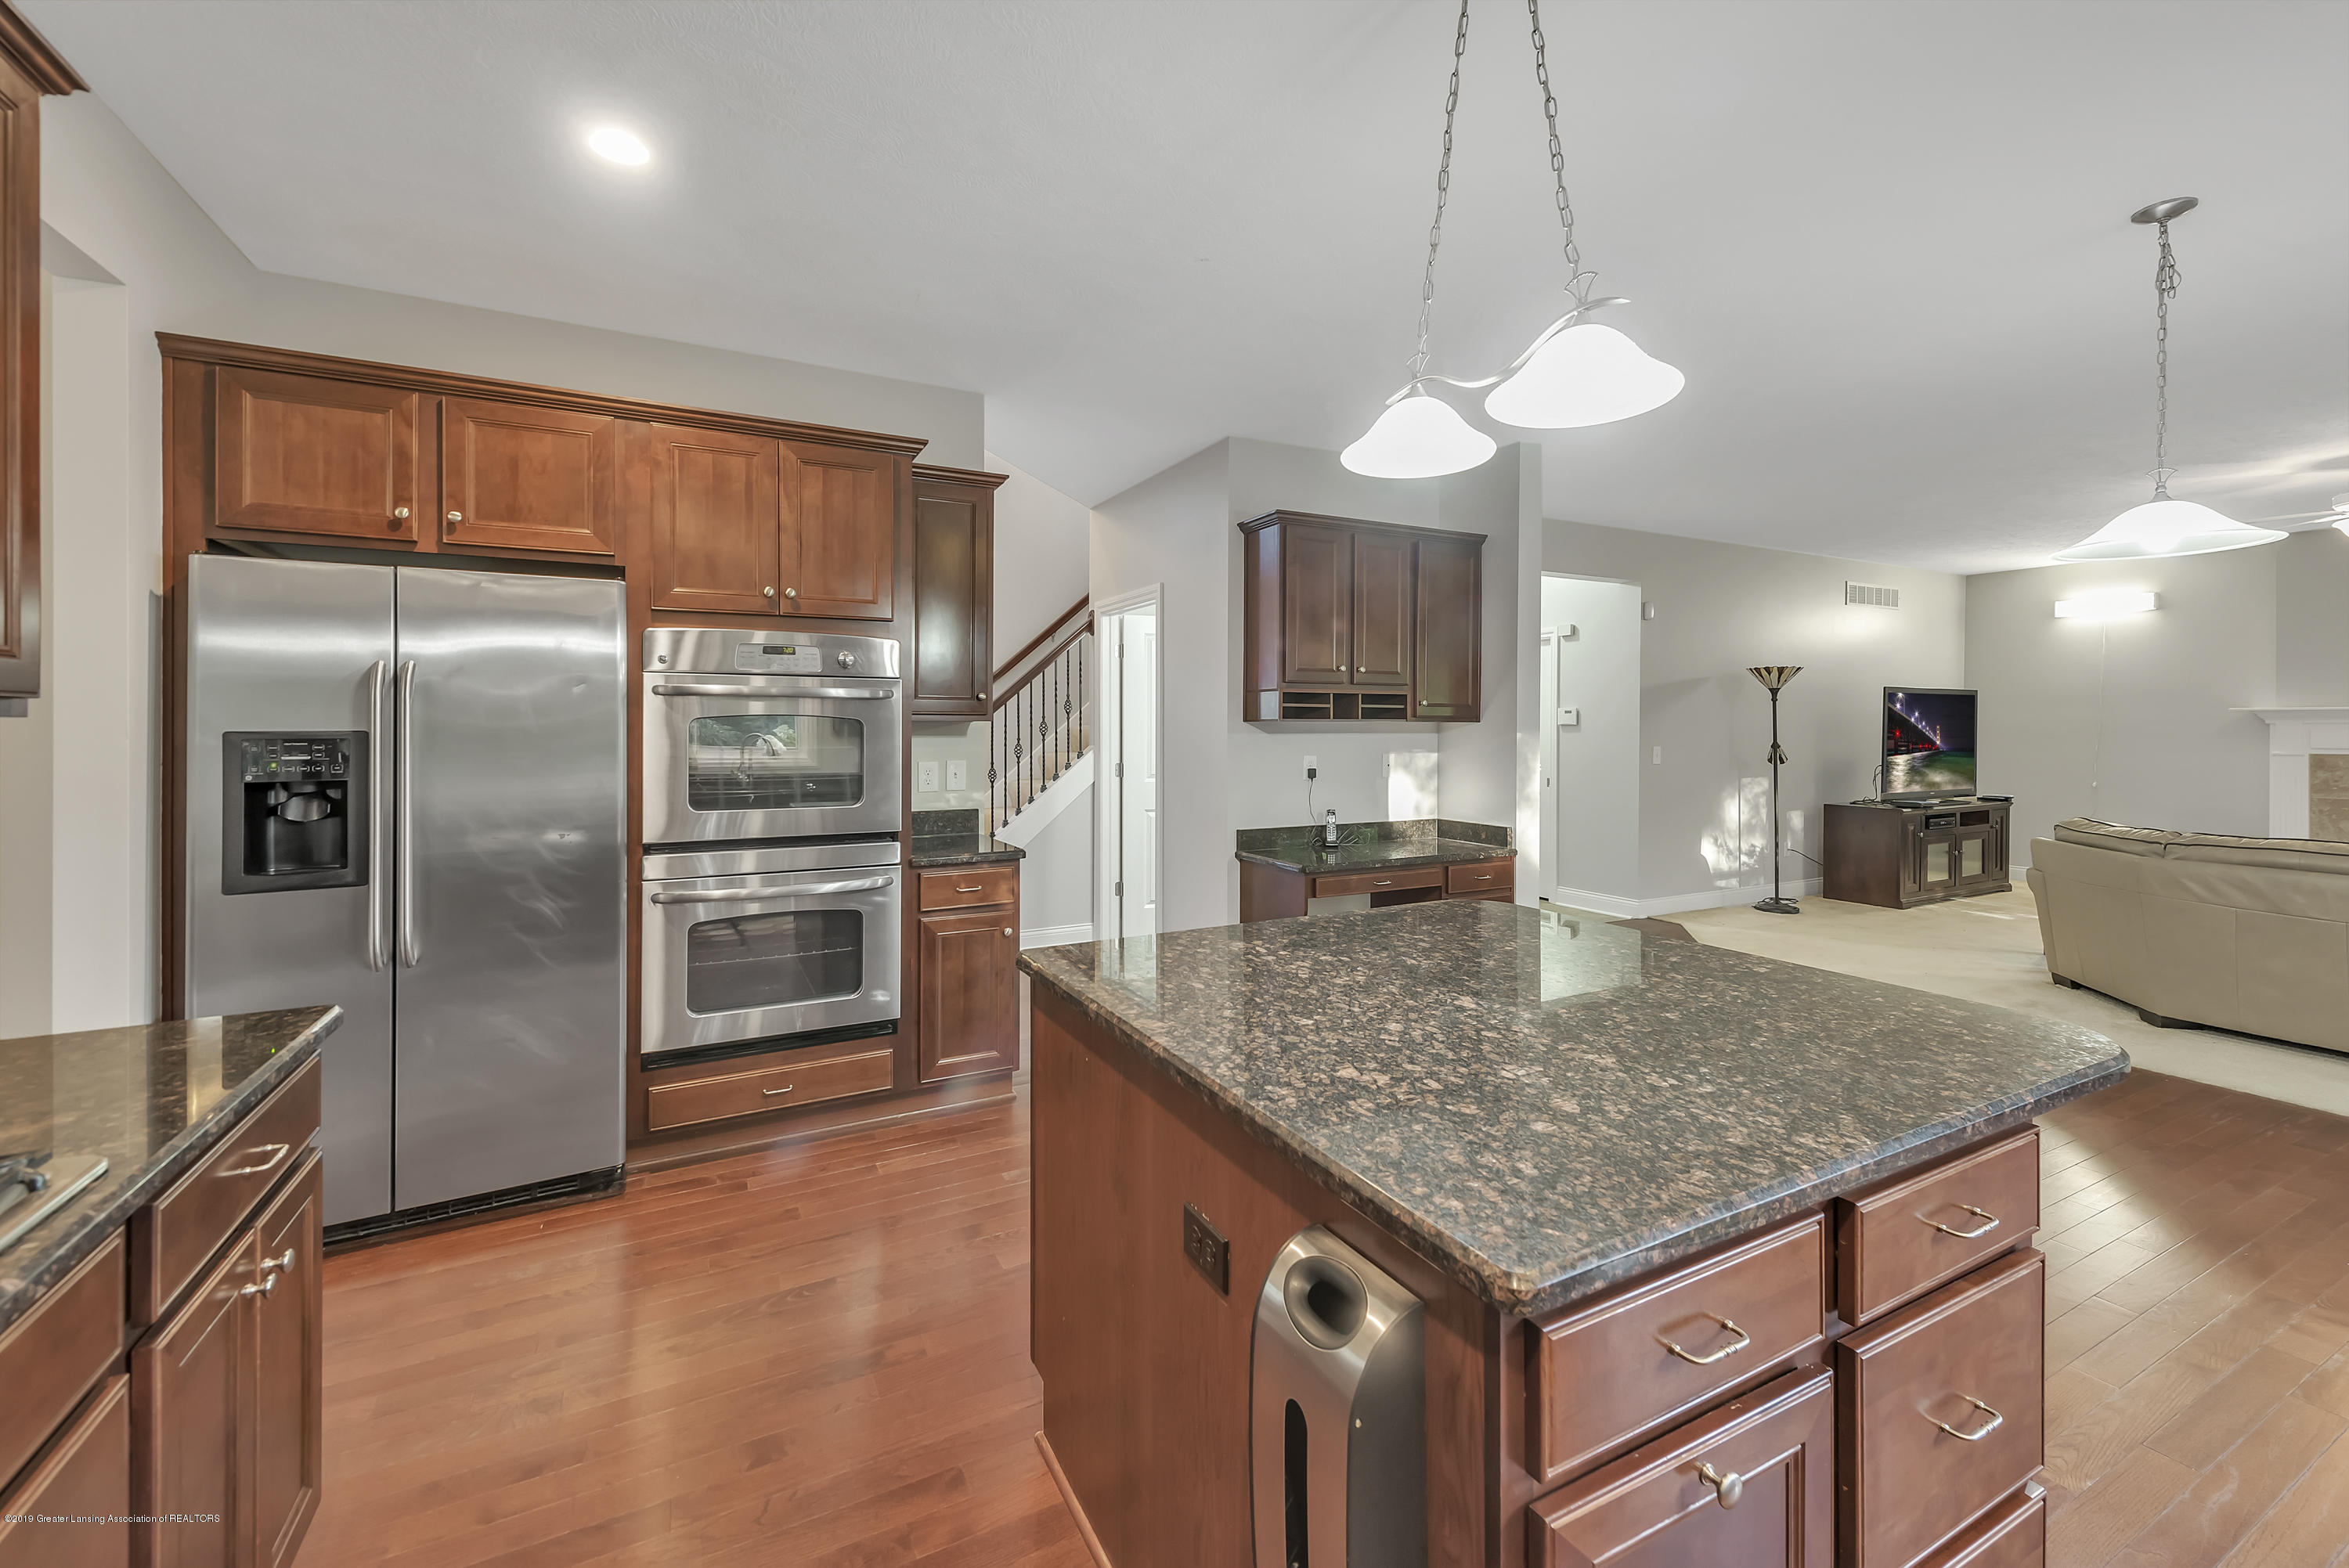 4229 Rain Forest Cir - 4229-Rainforest-Circle-Okemos-MI-windows - 16